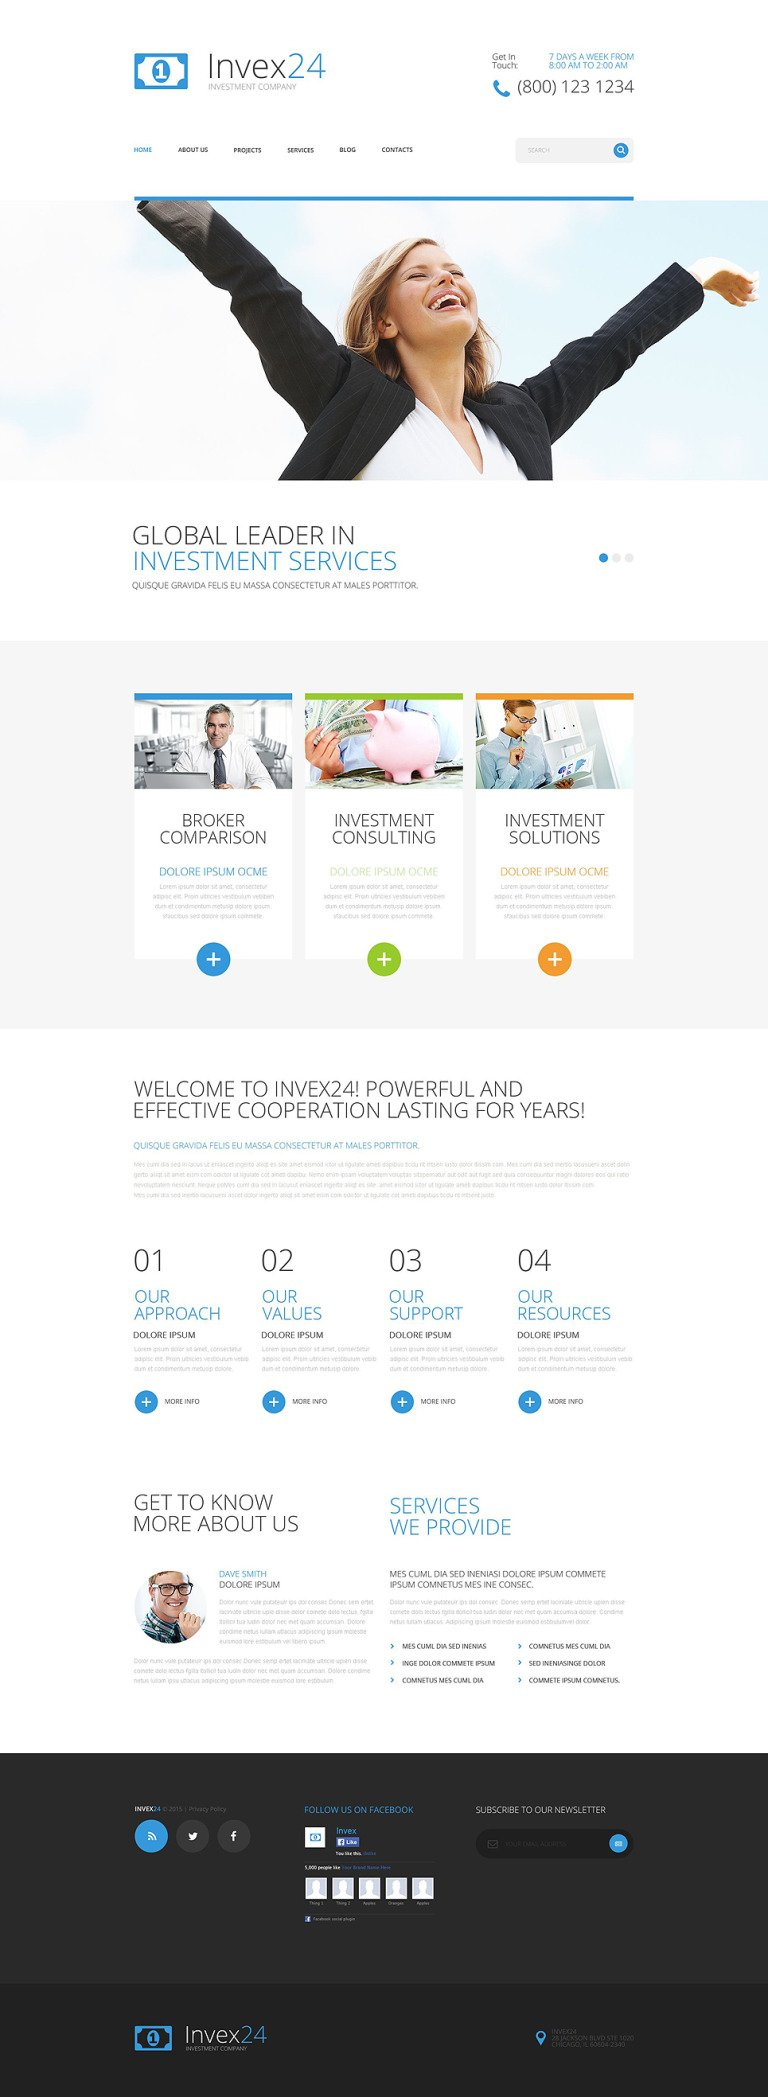 Invex24 WordPress Theme New Screenshots BIG